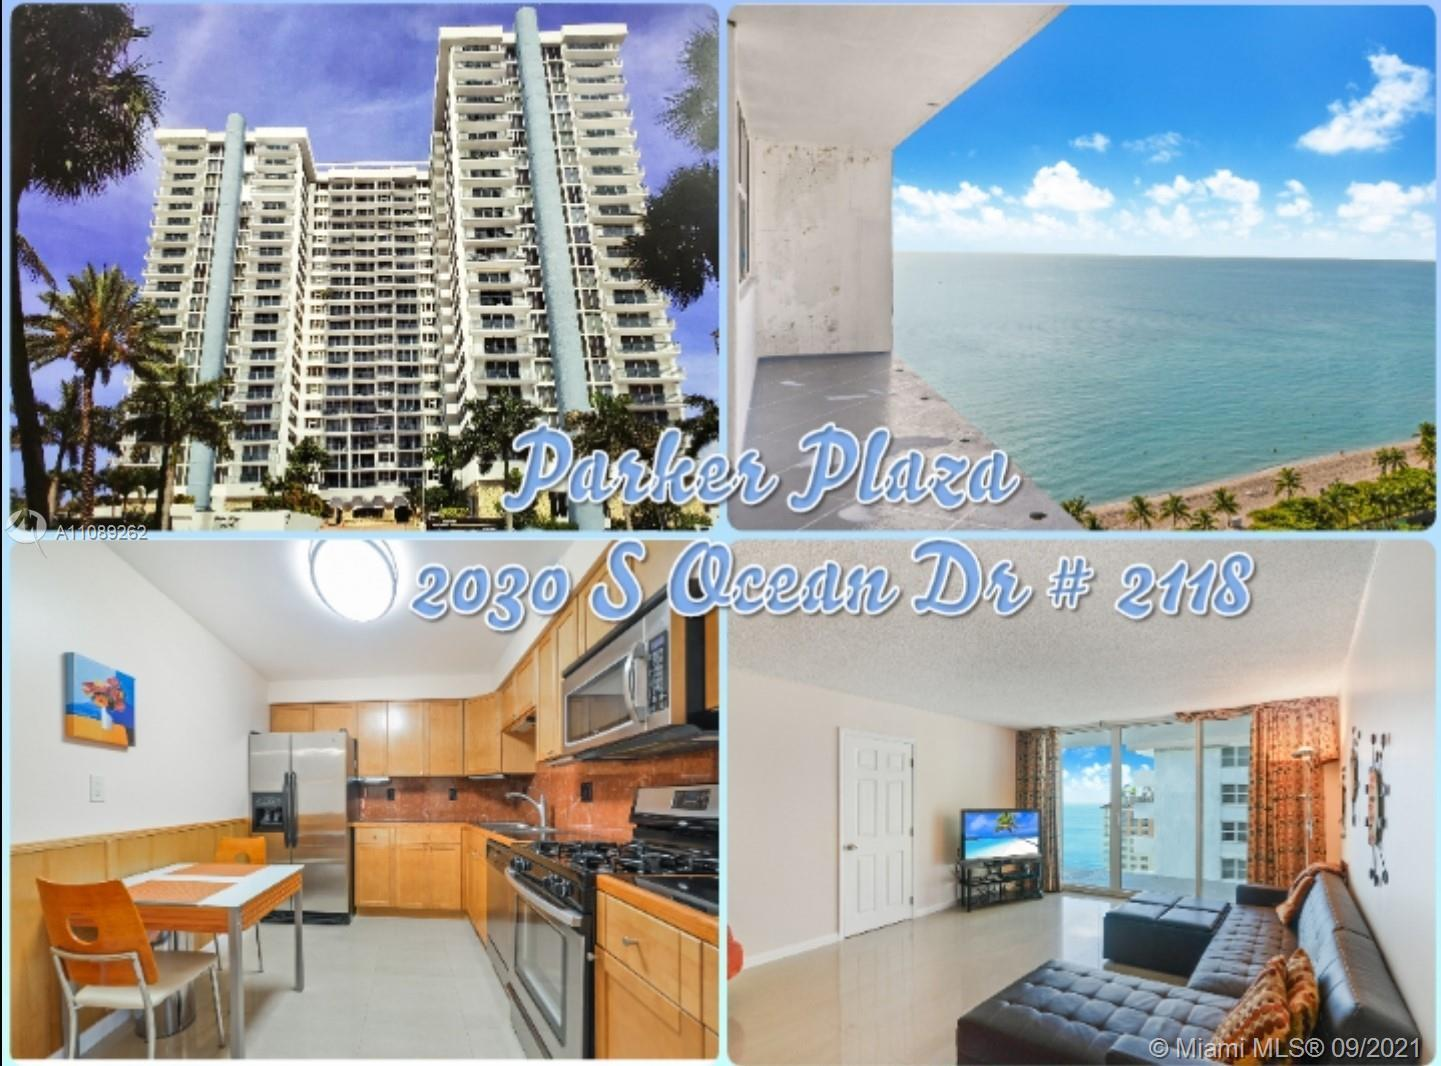 Great Opportunity, won't last . Beach front and beach service. Amazing ocean view from every apto Ro